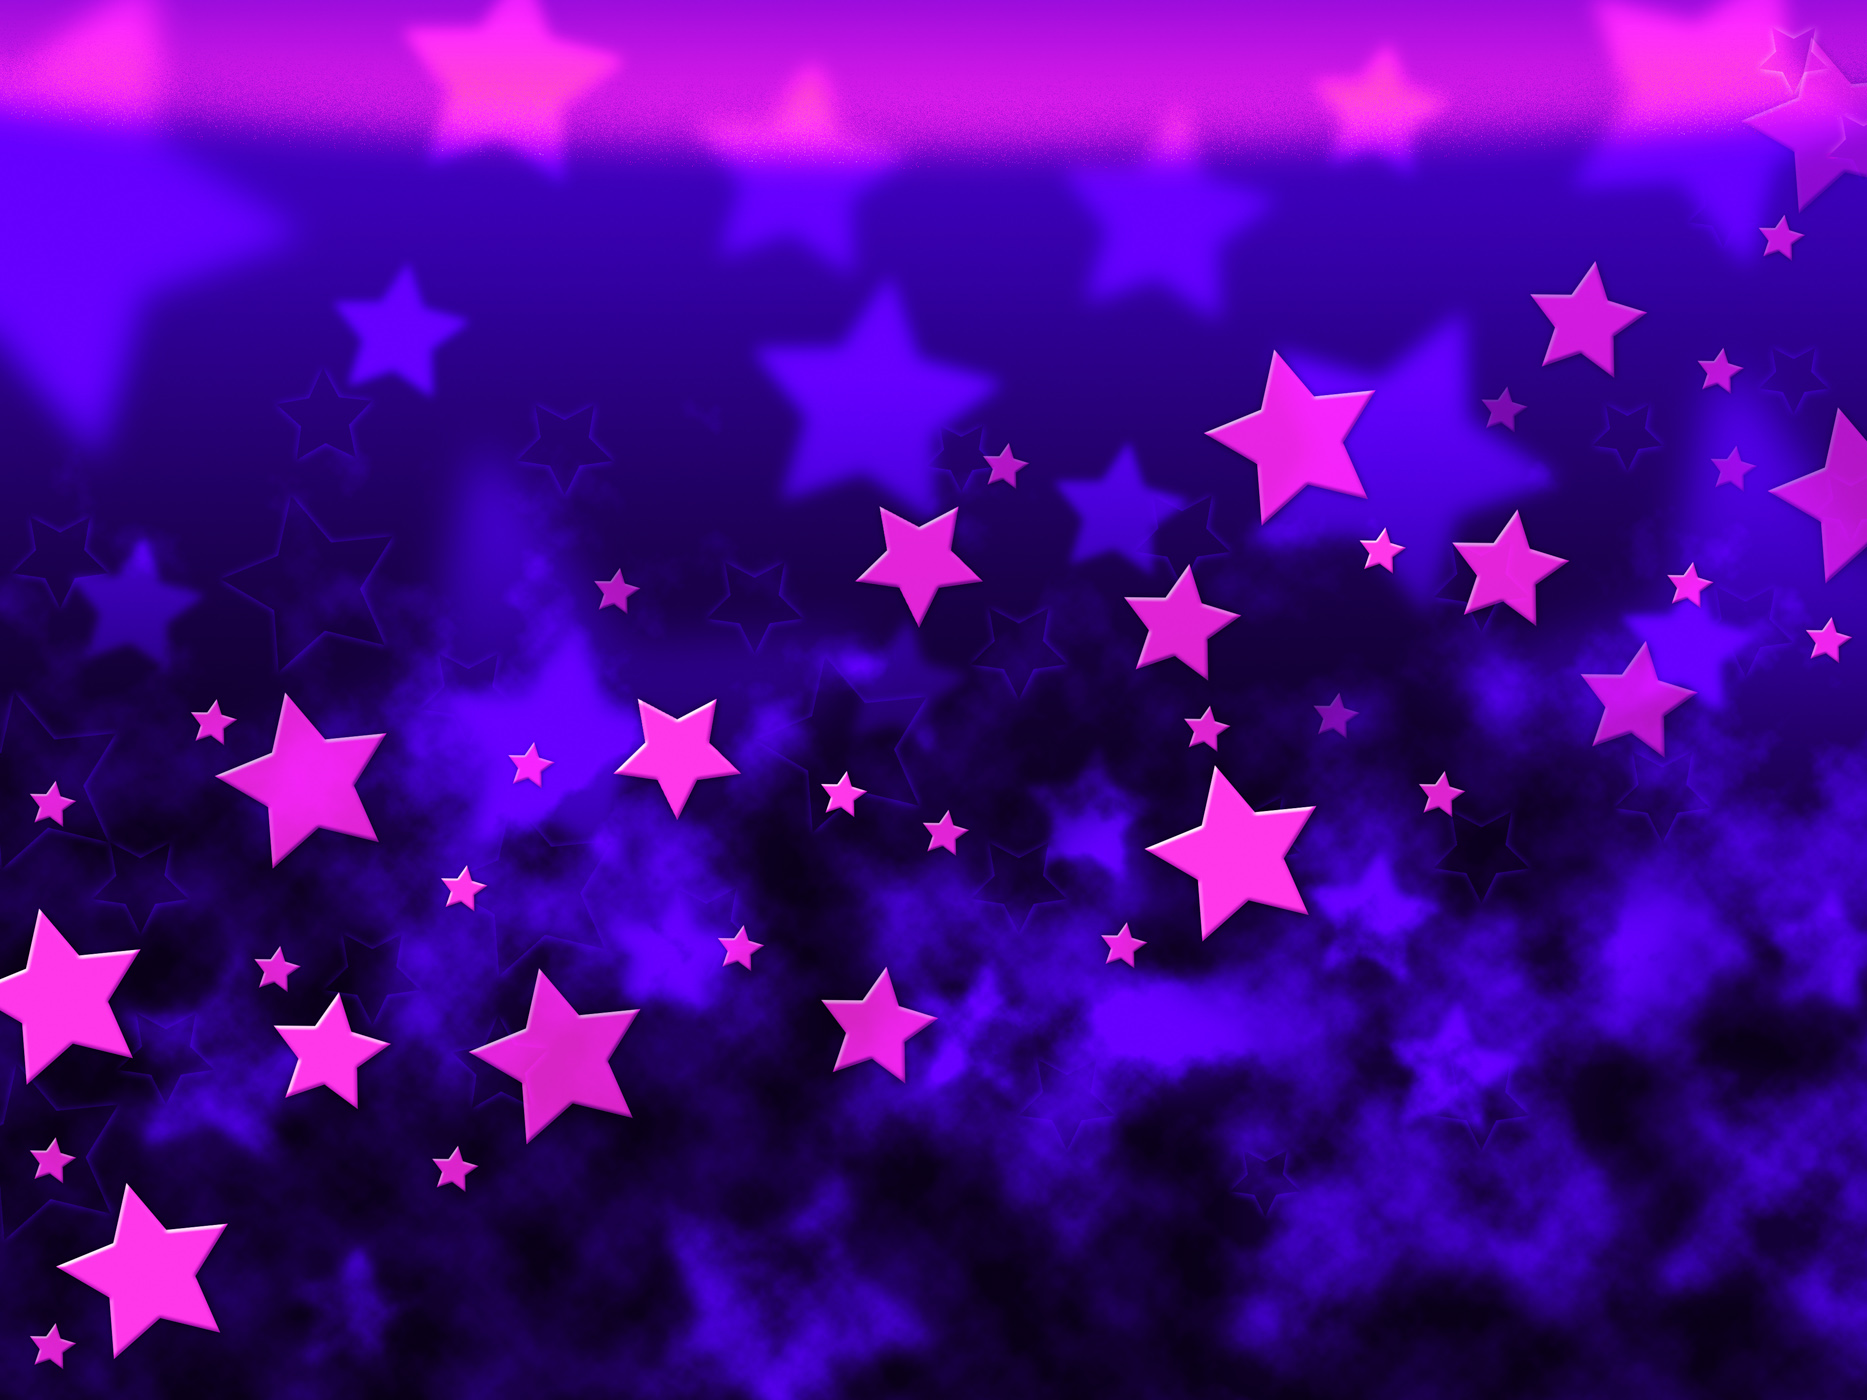 Purple stars background shows celestial light and starry photo